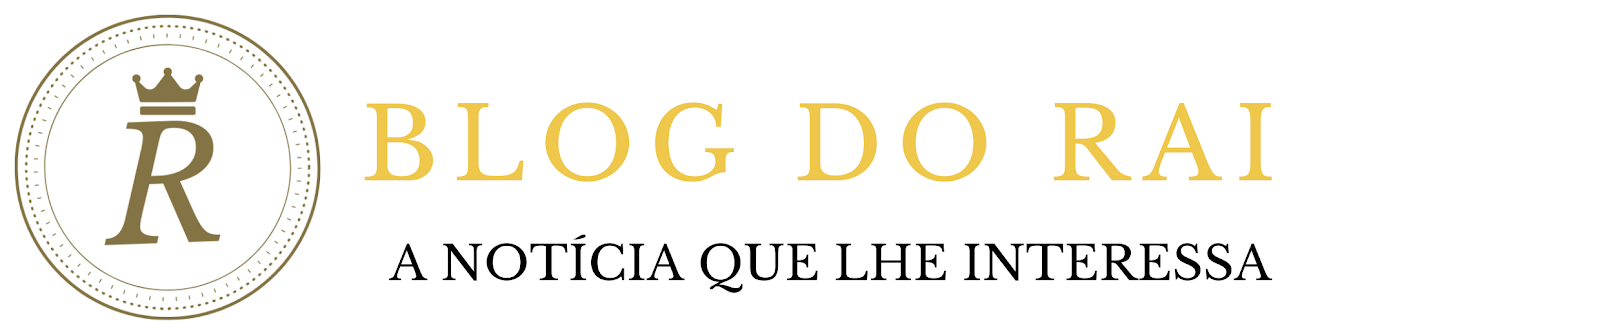 Blog do Rai